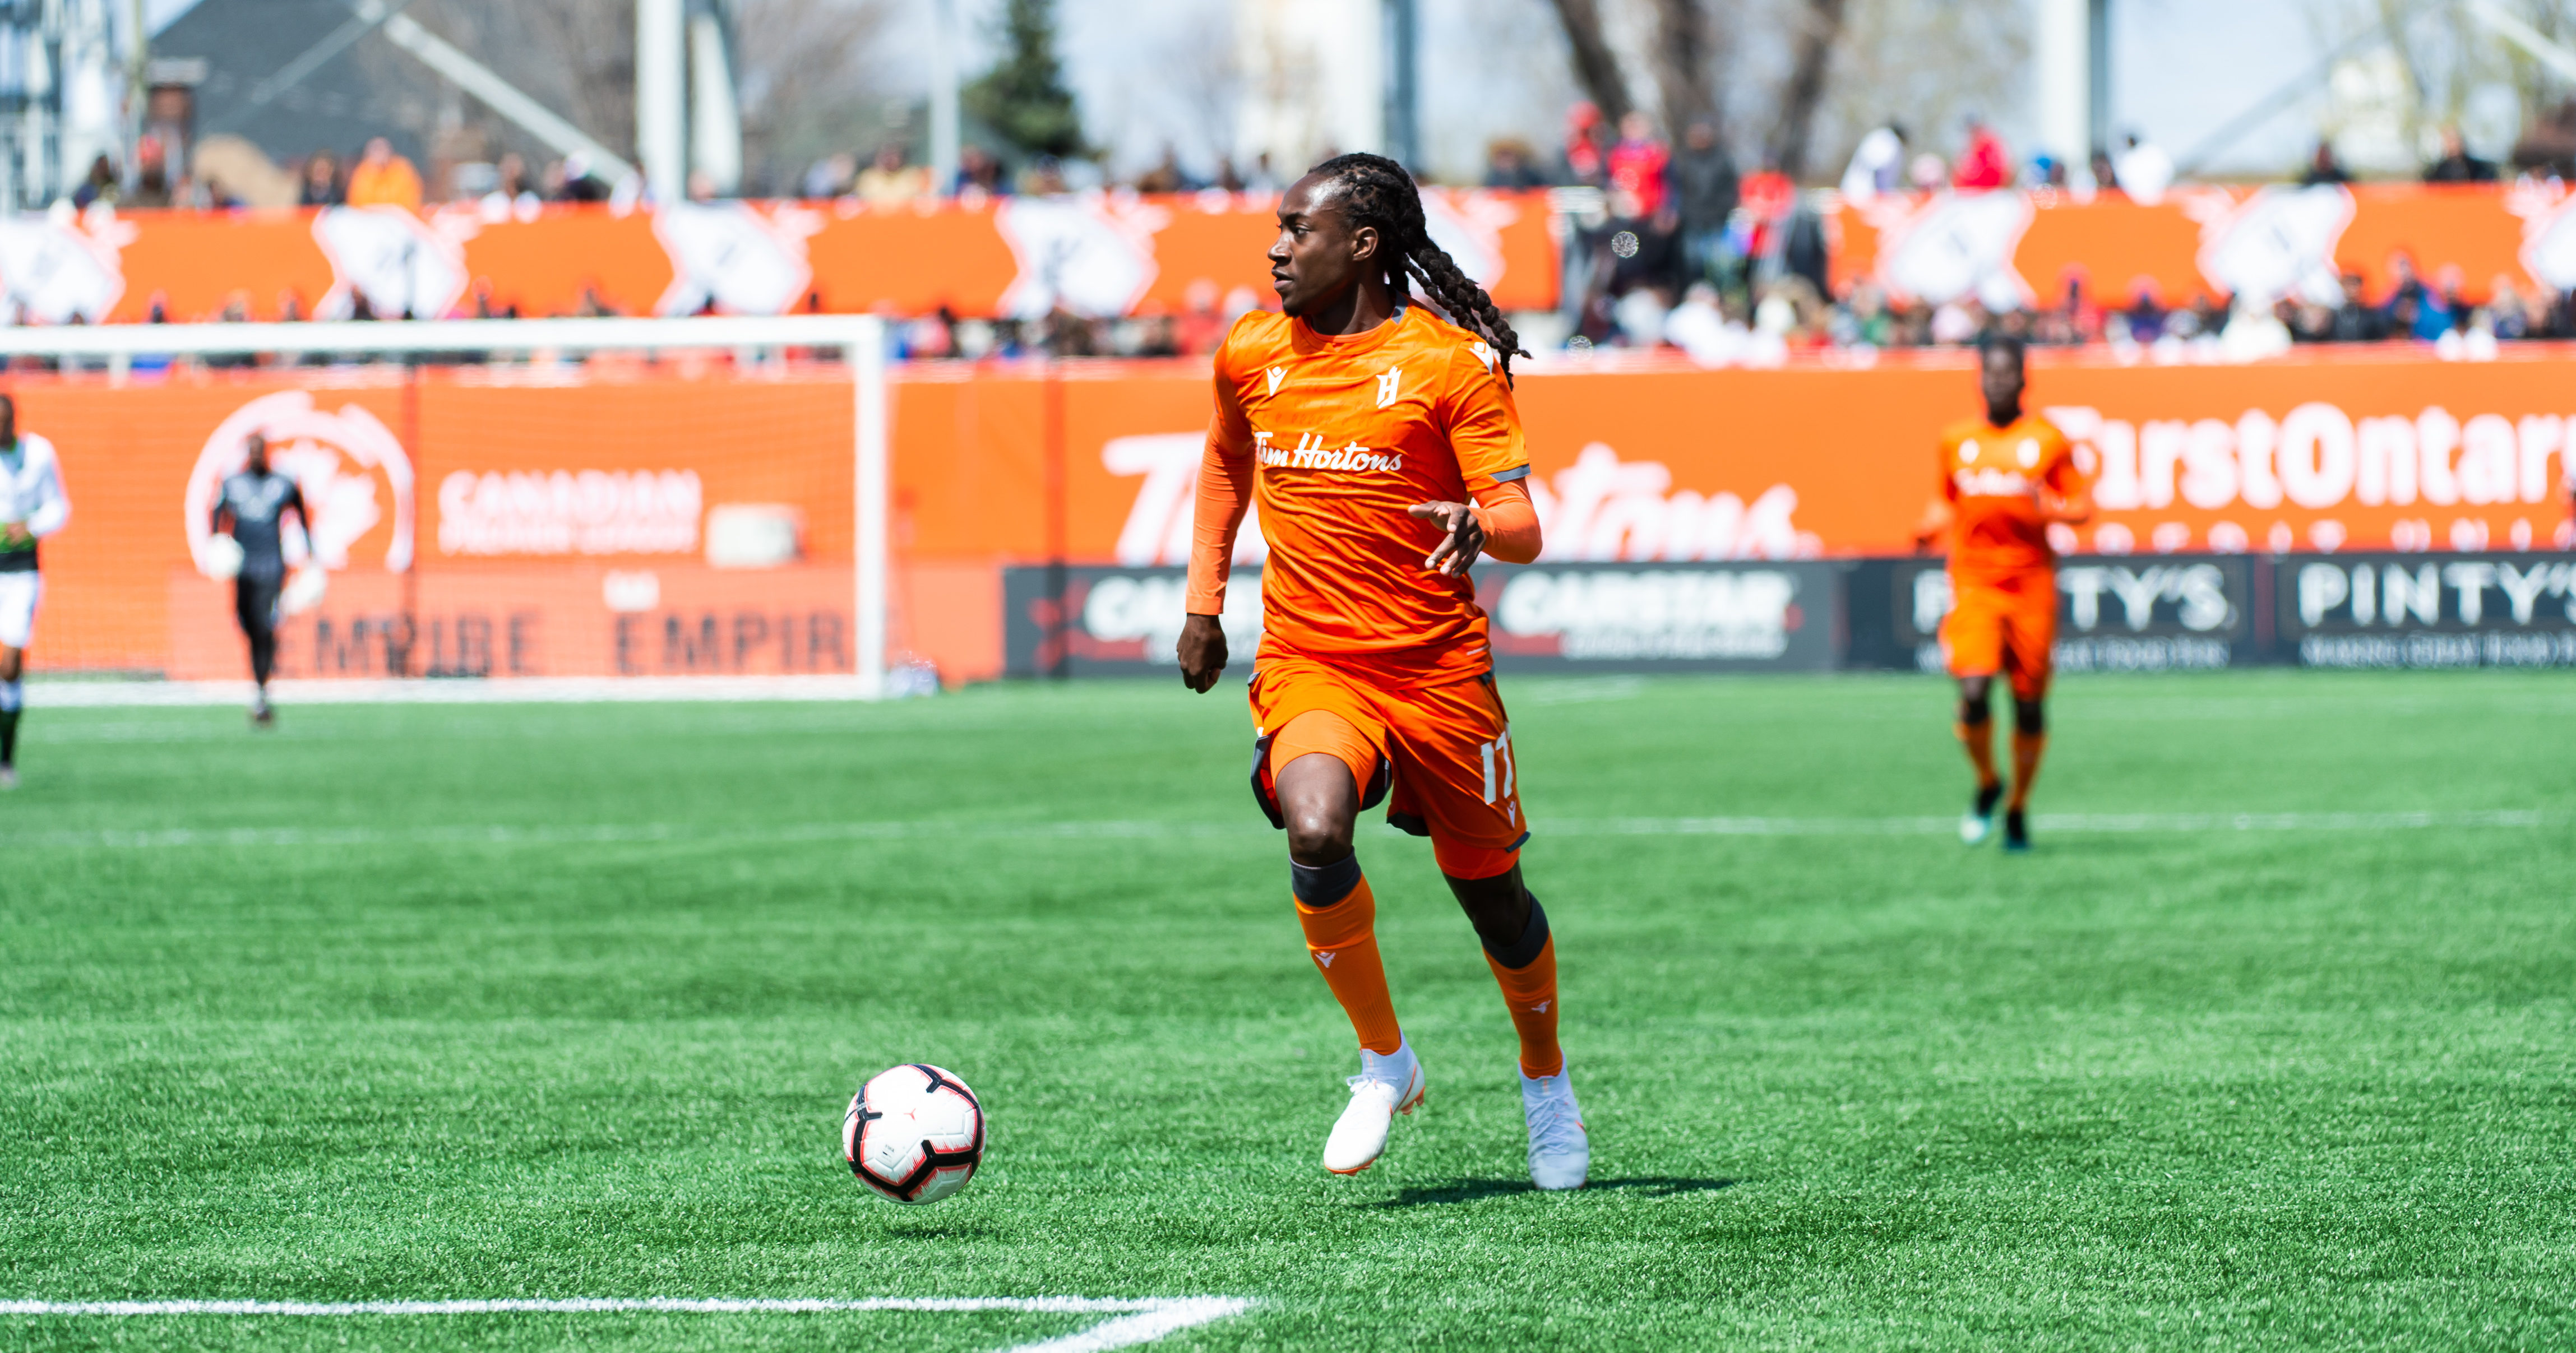 Forge FC draw York9 FC in CPL Inaugural Match – Forge FC